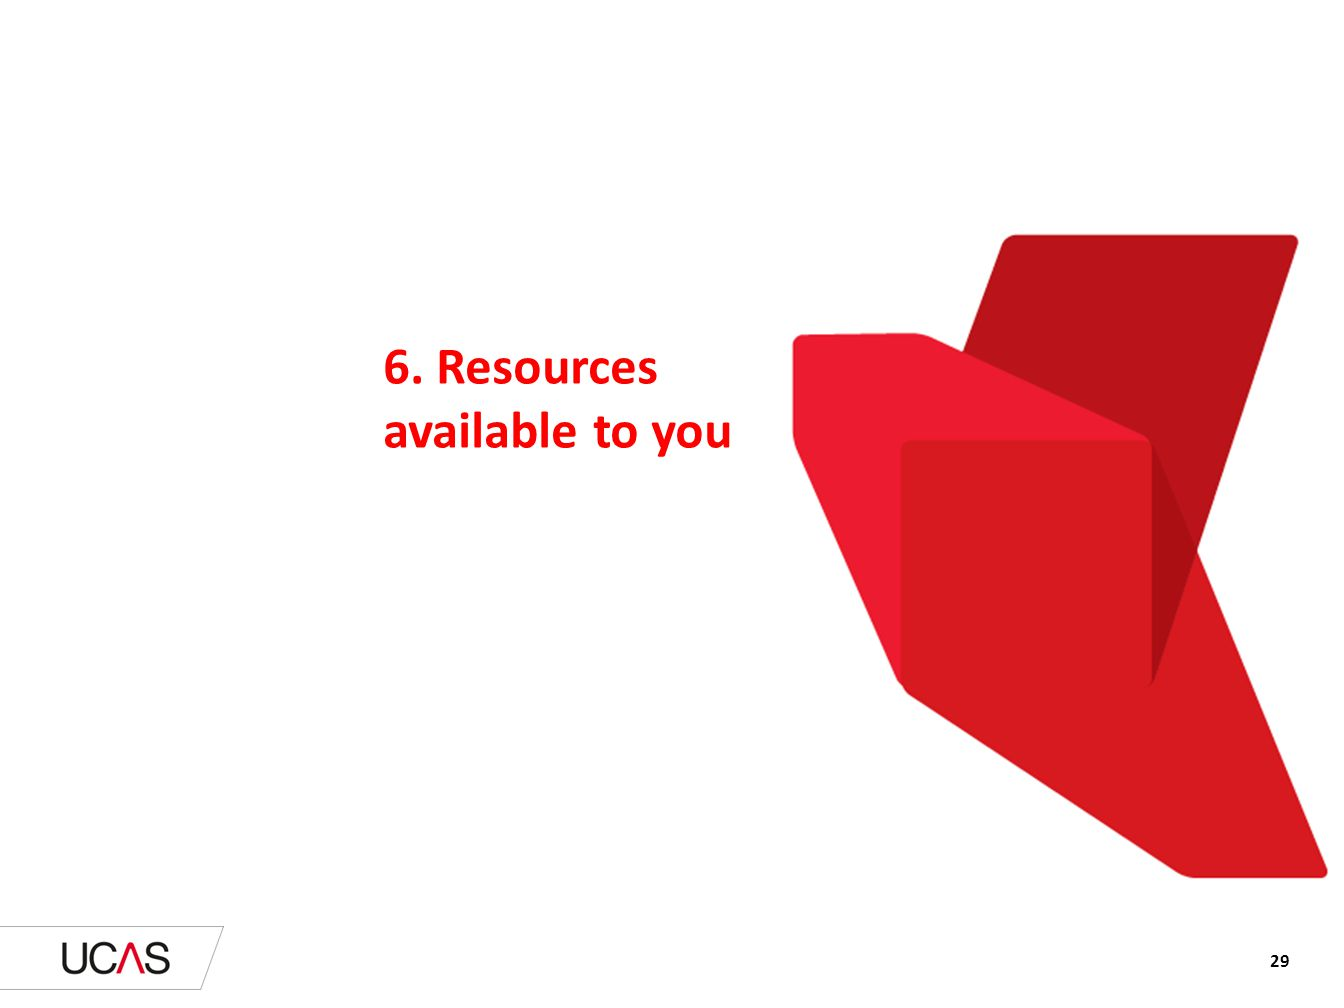 6. Resources available to you